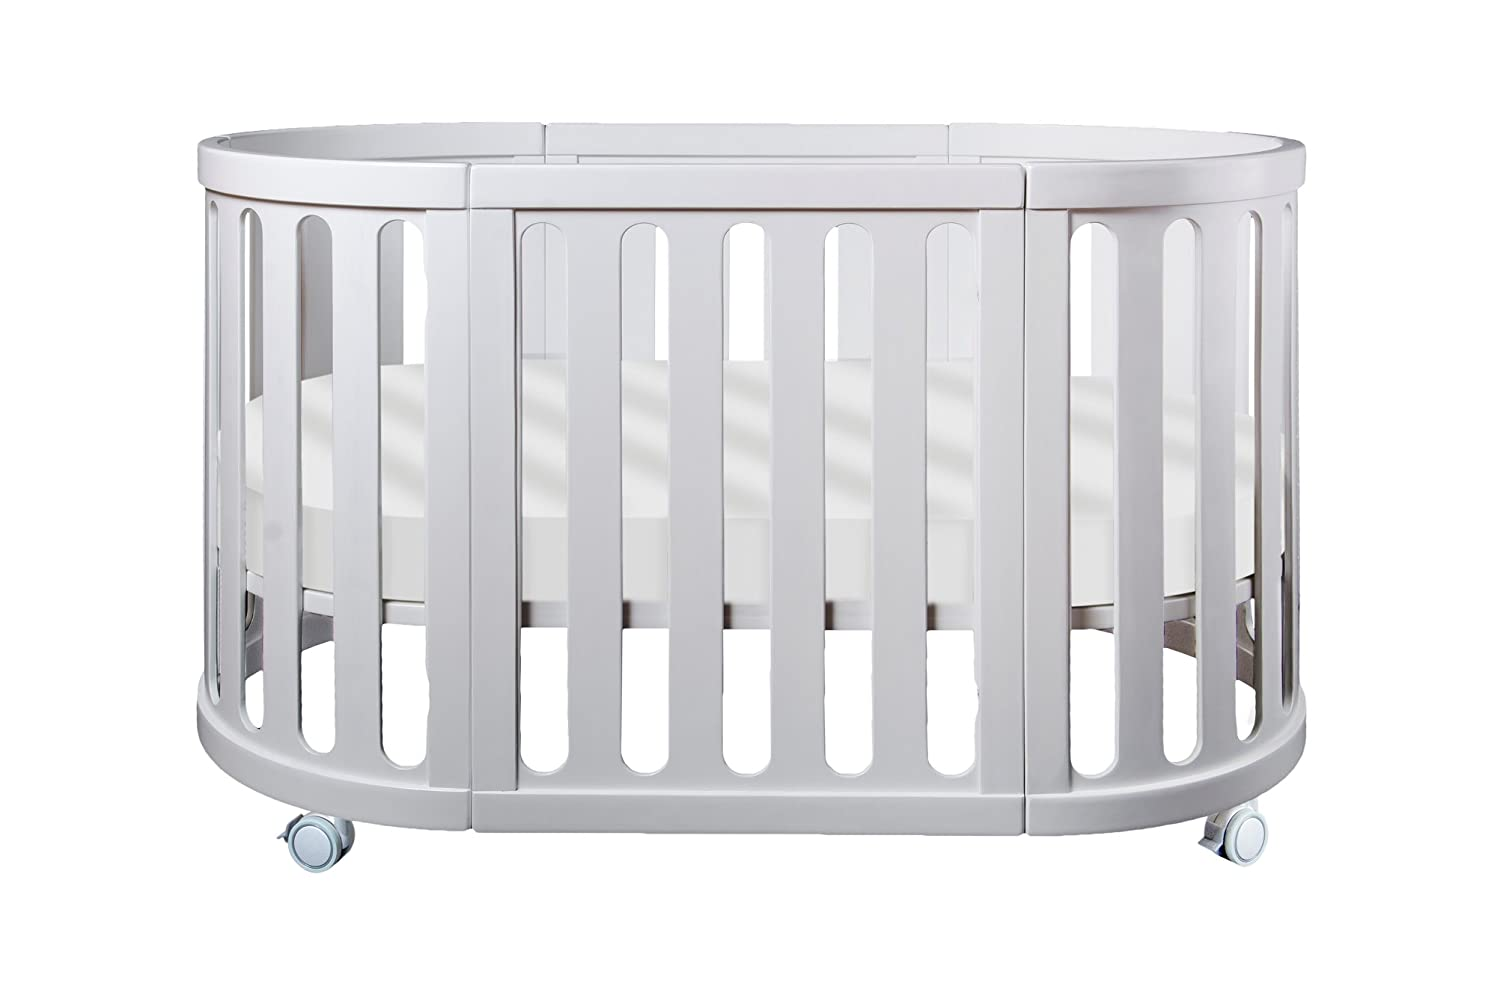 fitted sheet Stokke /& Oval Bassinet or Crib Waterproof Cover